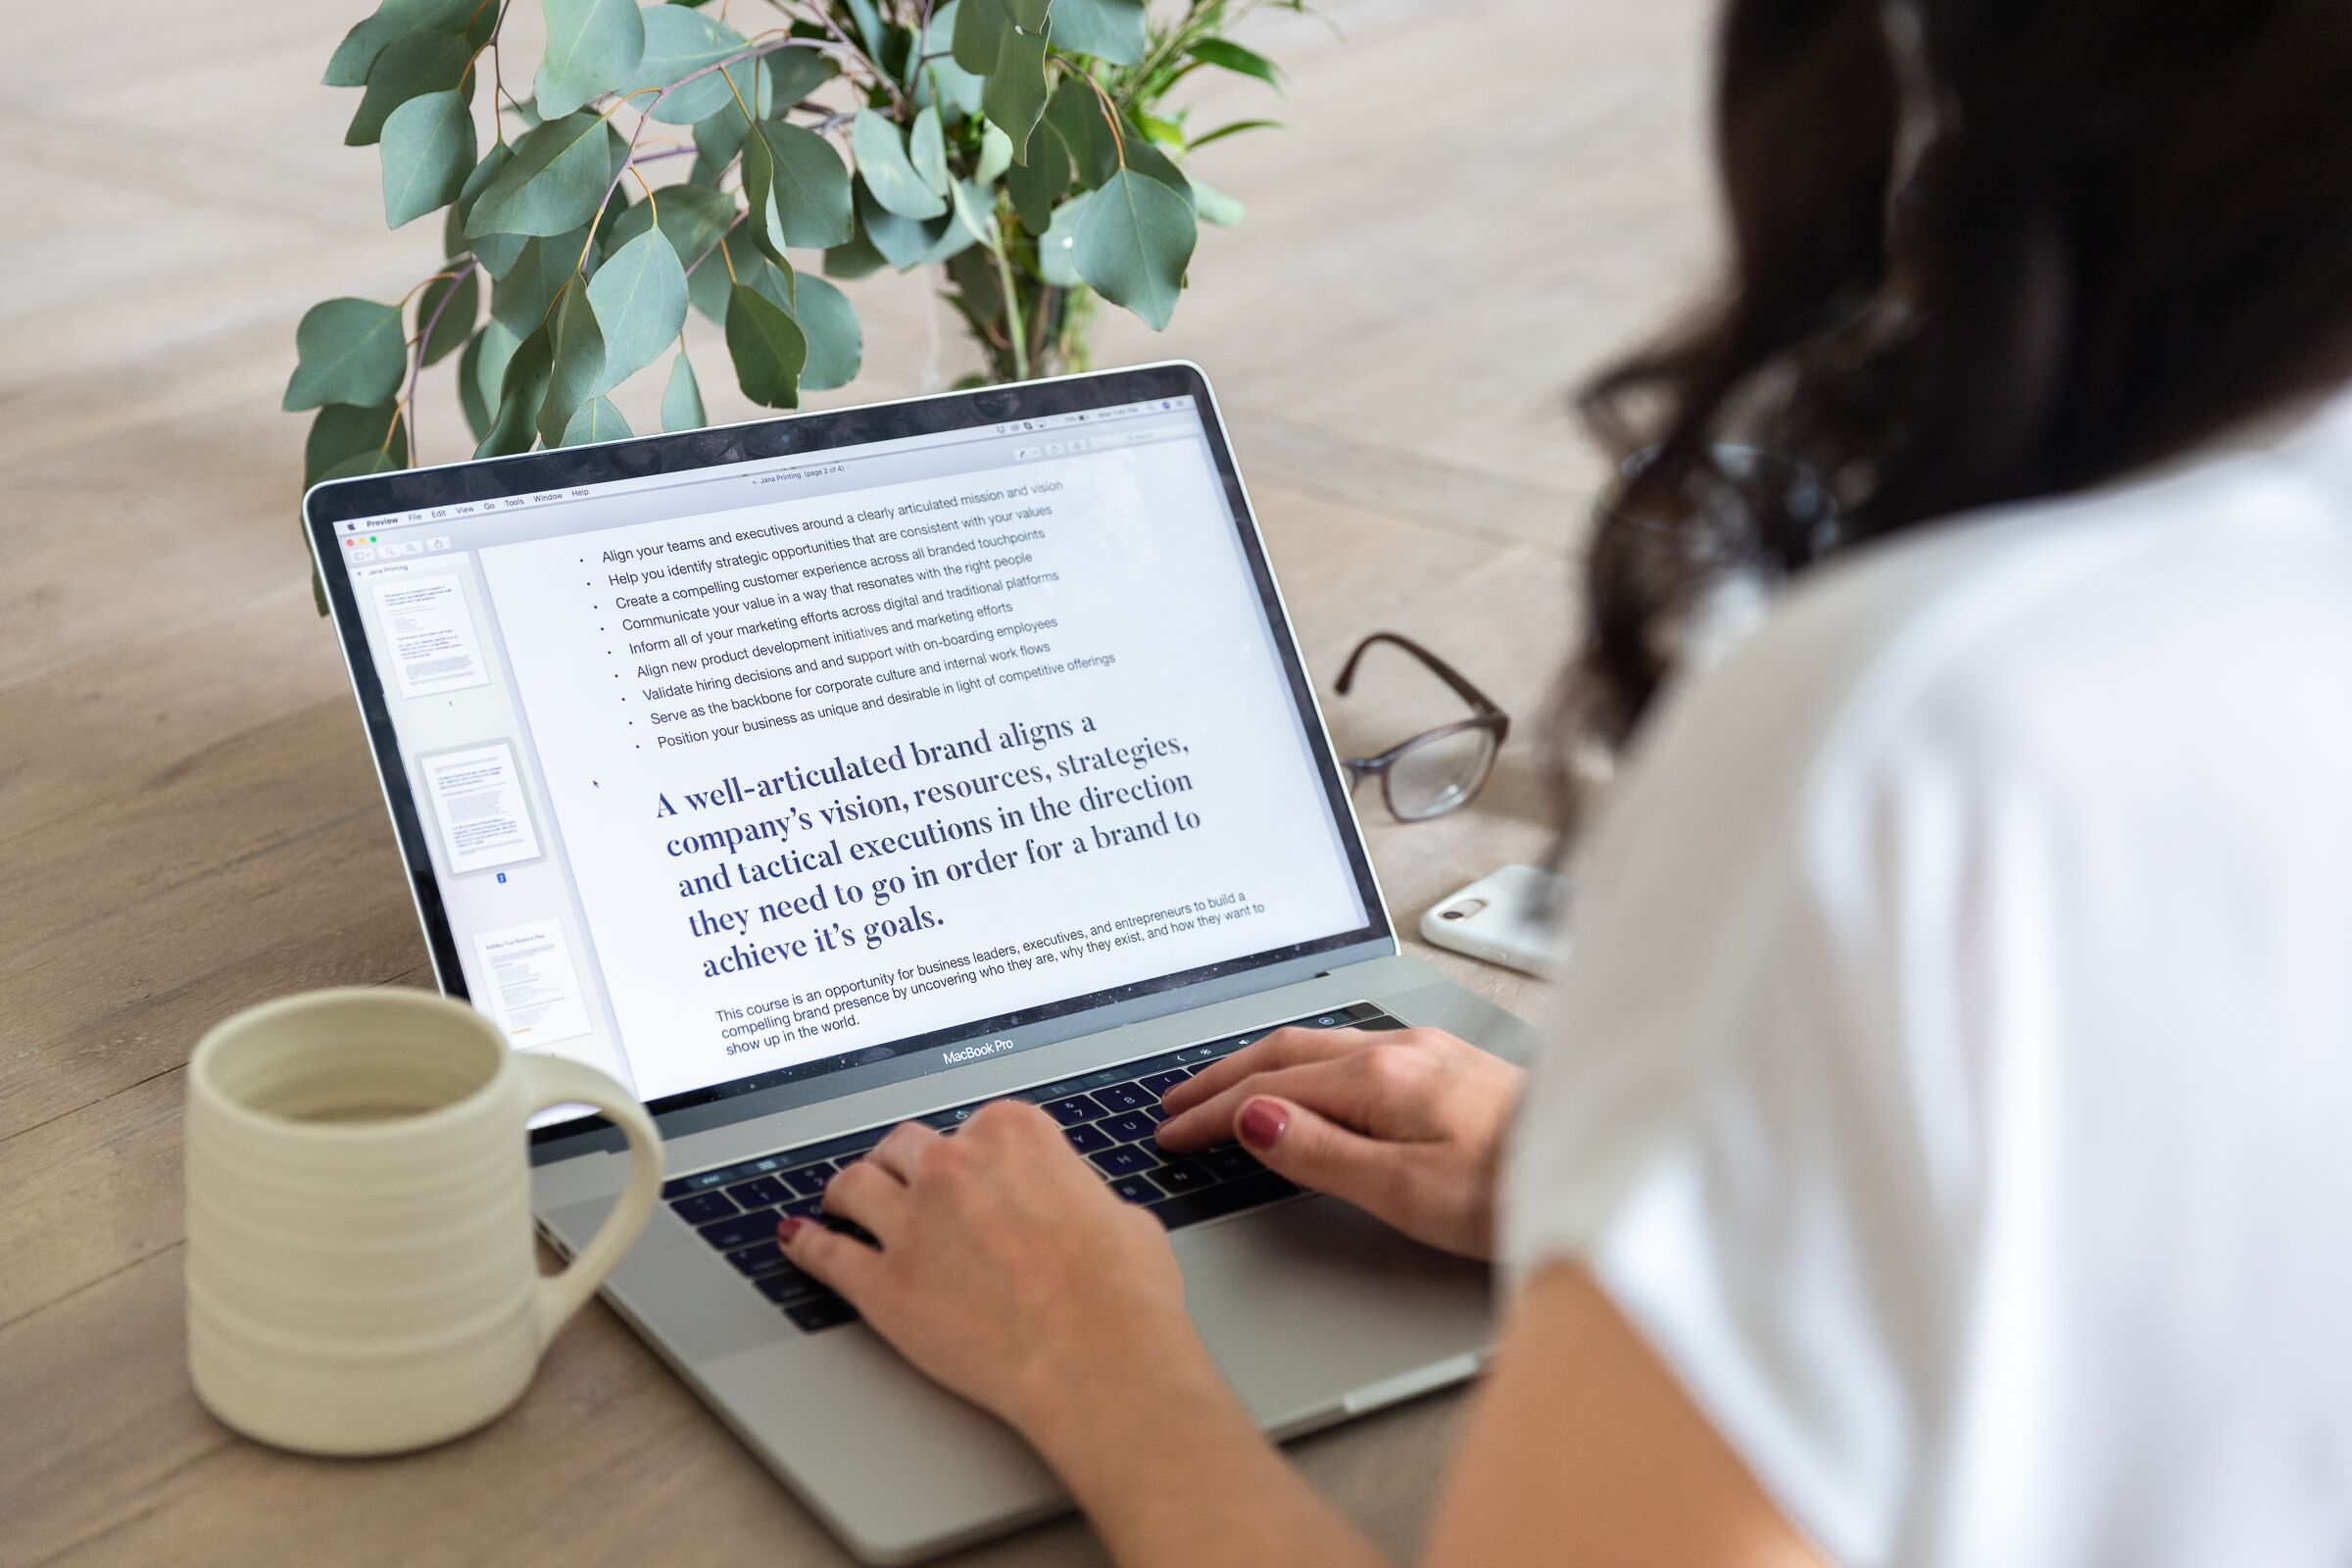 A woman working on a branding document in a trendy setting.